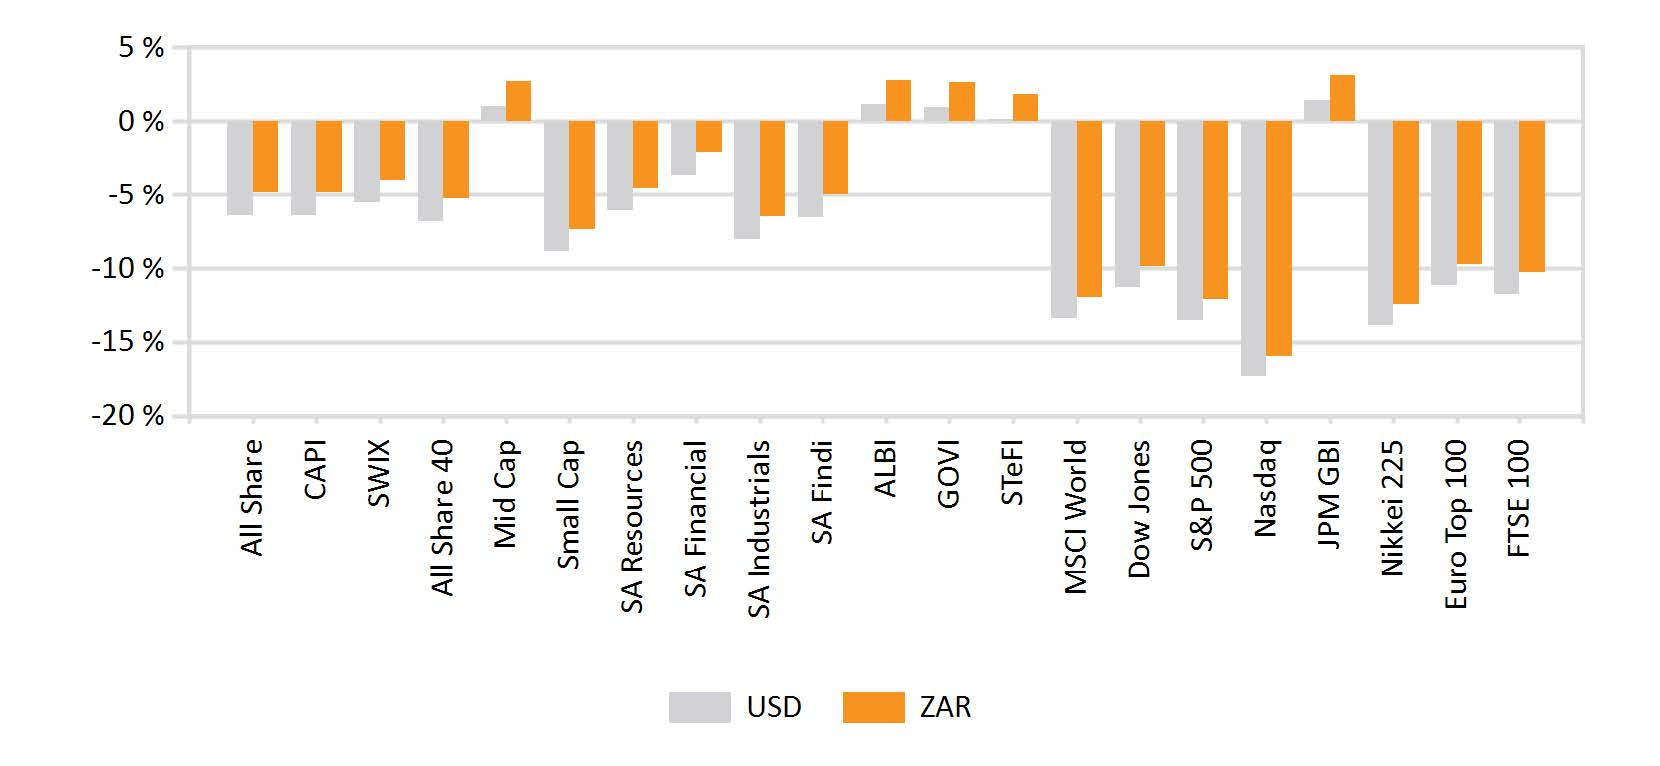 World Market Indices Performance- Monthly return of major indices (002)